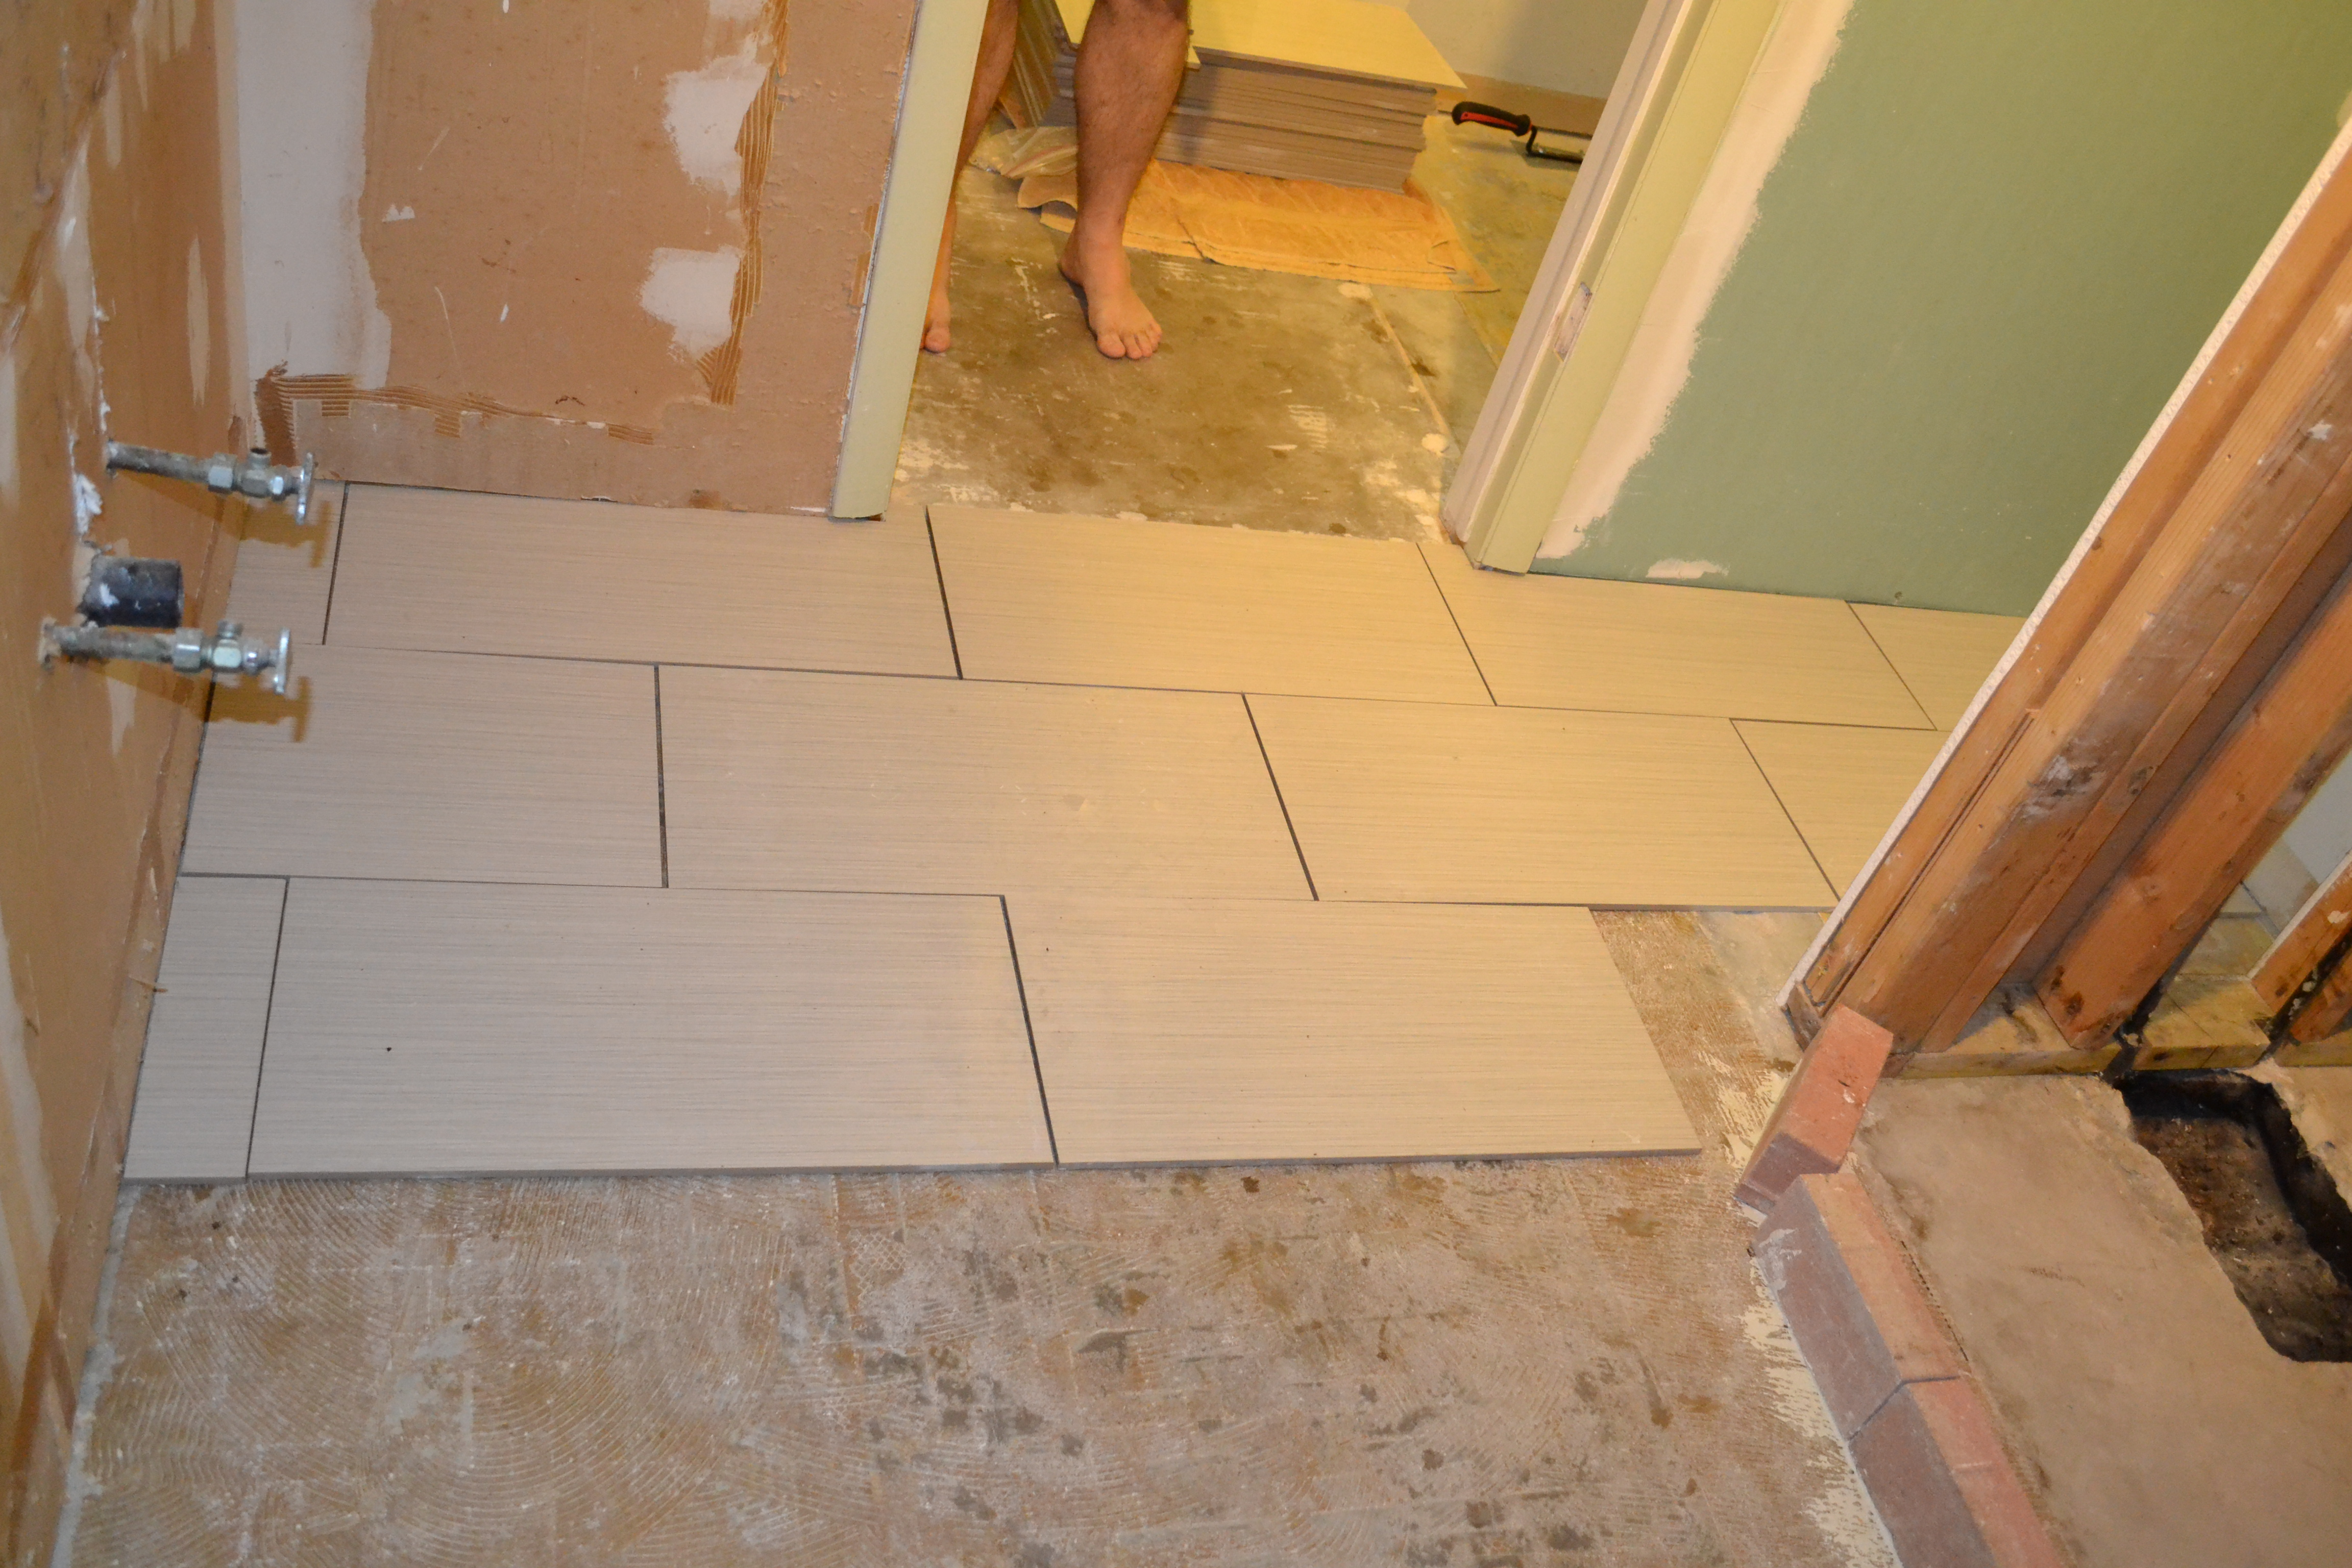 Fantastic Bath Shower Tile Designs Tiny Cleaning Bathroom With Bleach And Water Square Kitchen Bath Showrooms Nyc Apartment Bathroom Renovation Young Mediterranean Style Bathroom Tiles BlueGrey And White Themed Bathroom The NeverEnding (Bathroom) Story | Pardon Our Sawdust